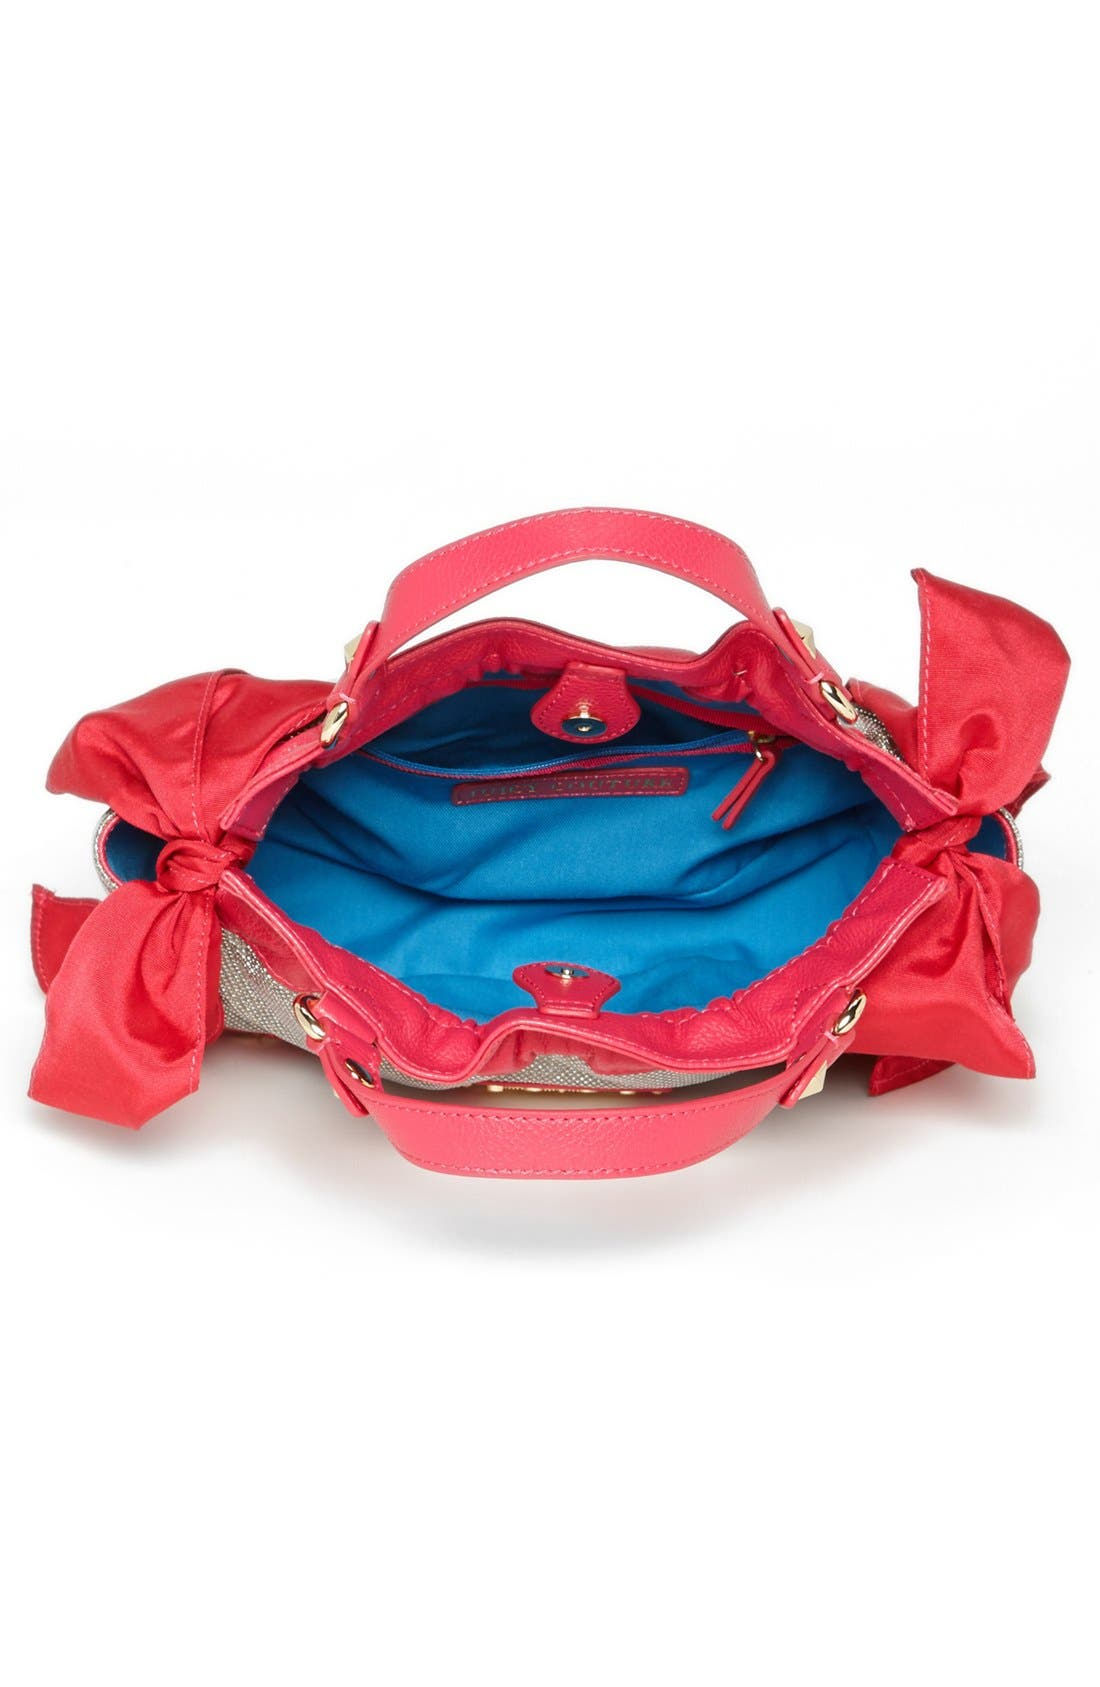 Alternate Image 3  - Juicy Couture 'Bright Diamond - Mini Daydreamer' Bag (Girls)